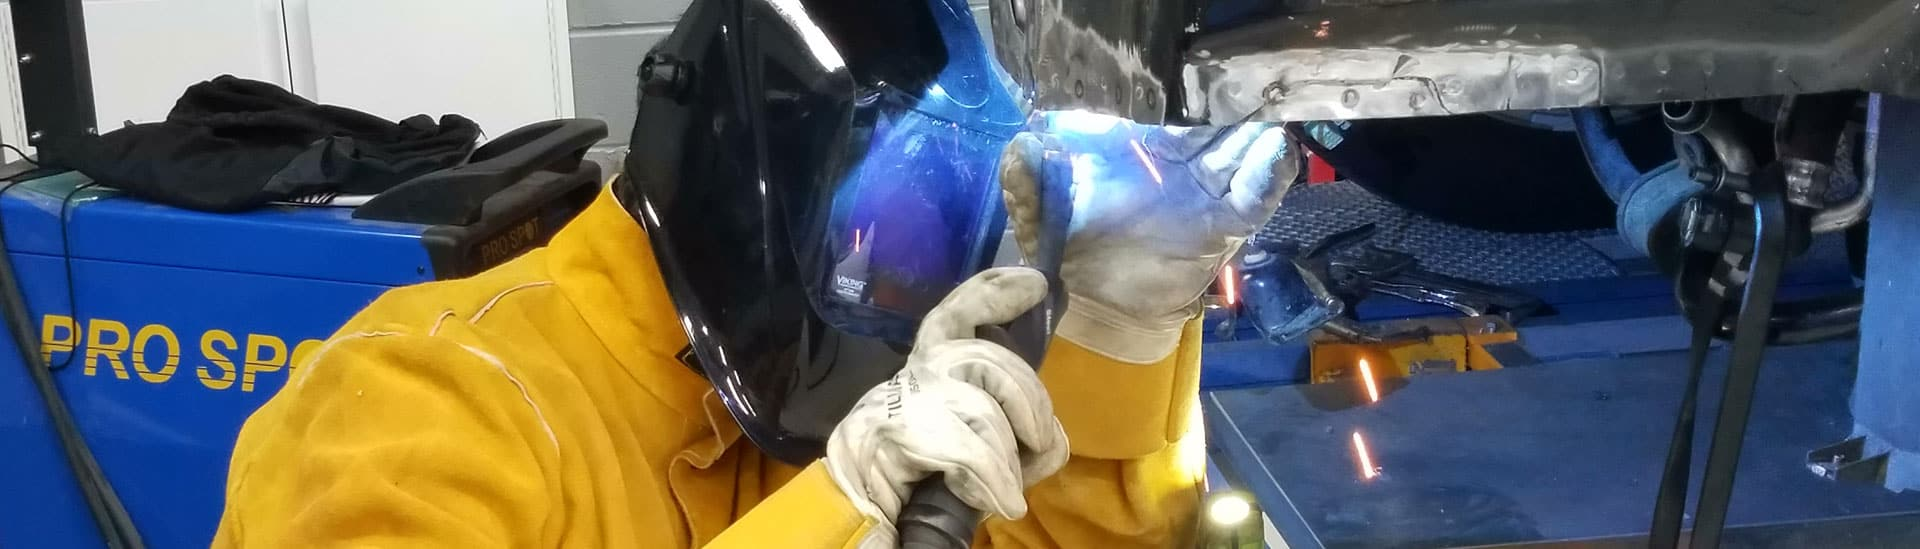 welding vehicle after accident